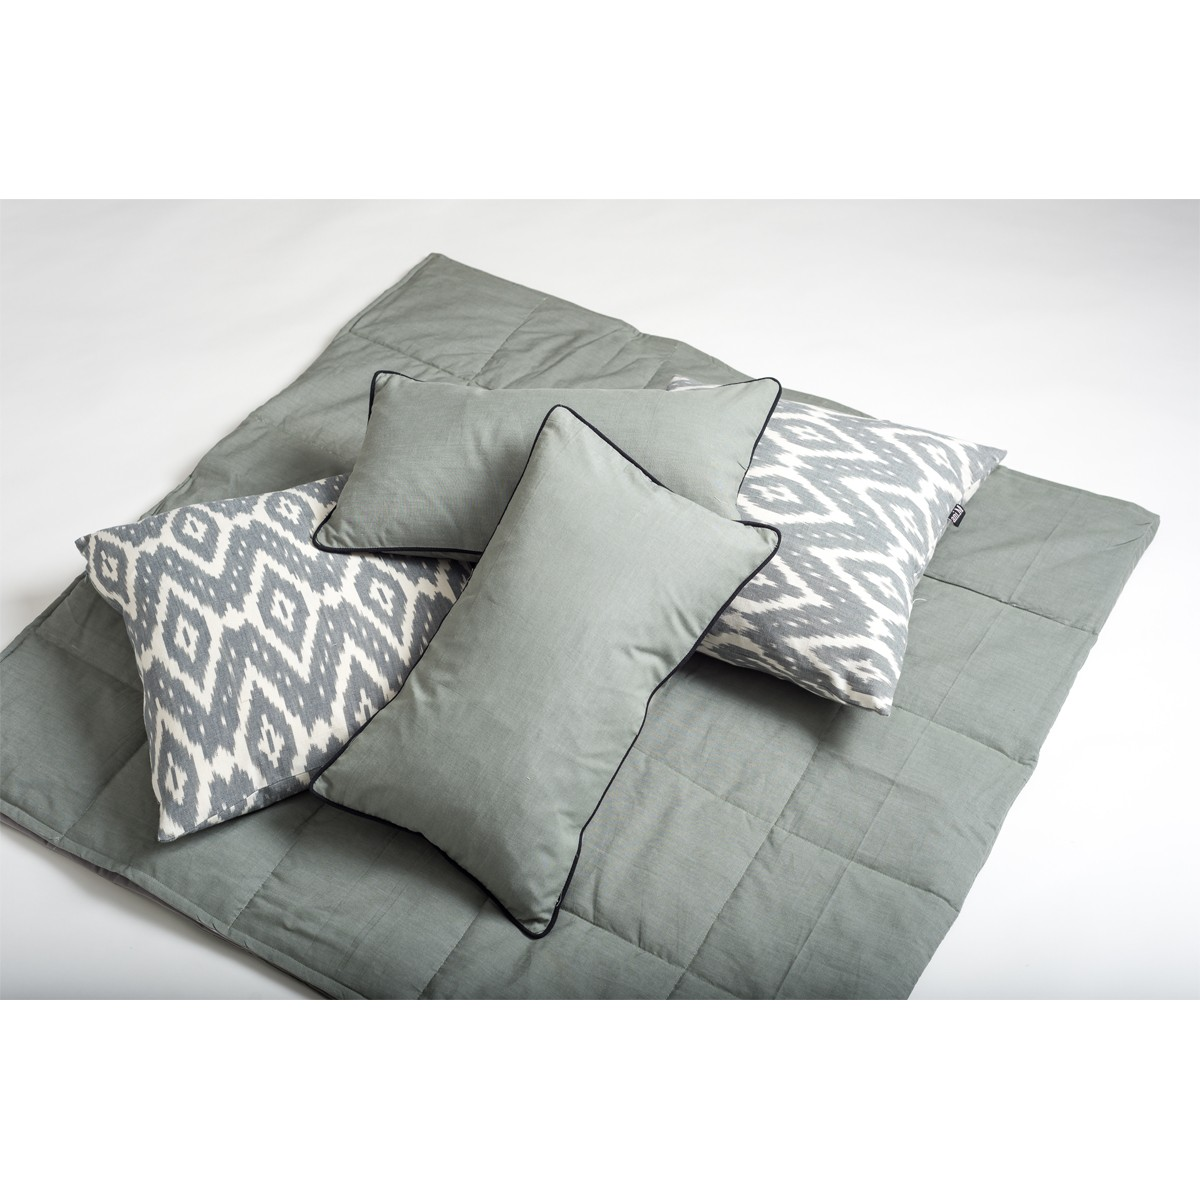 Mist - Grey padded panel throw with box stitch detail - Single